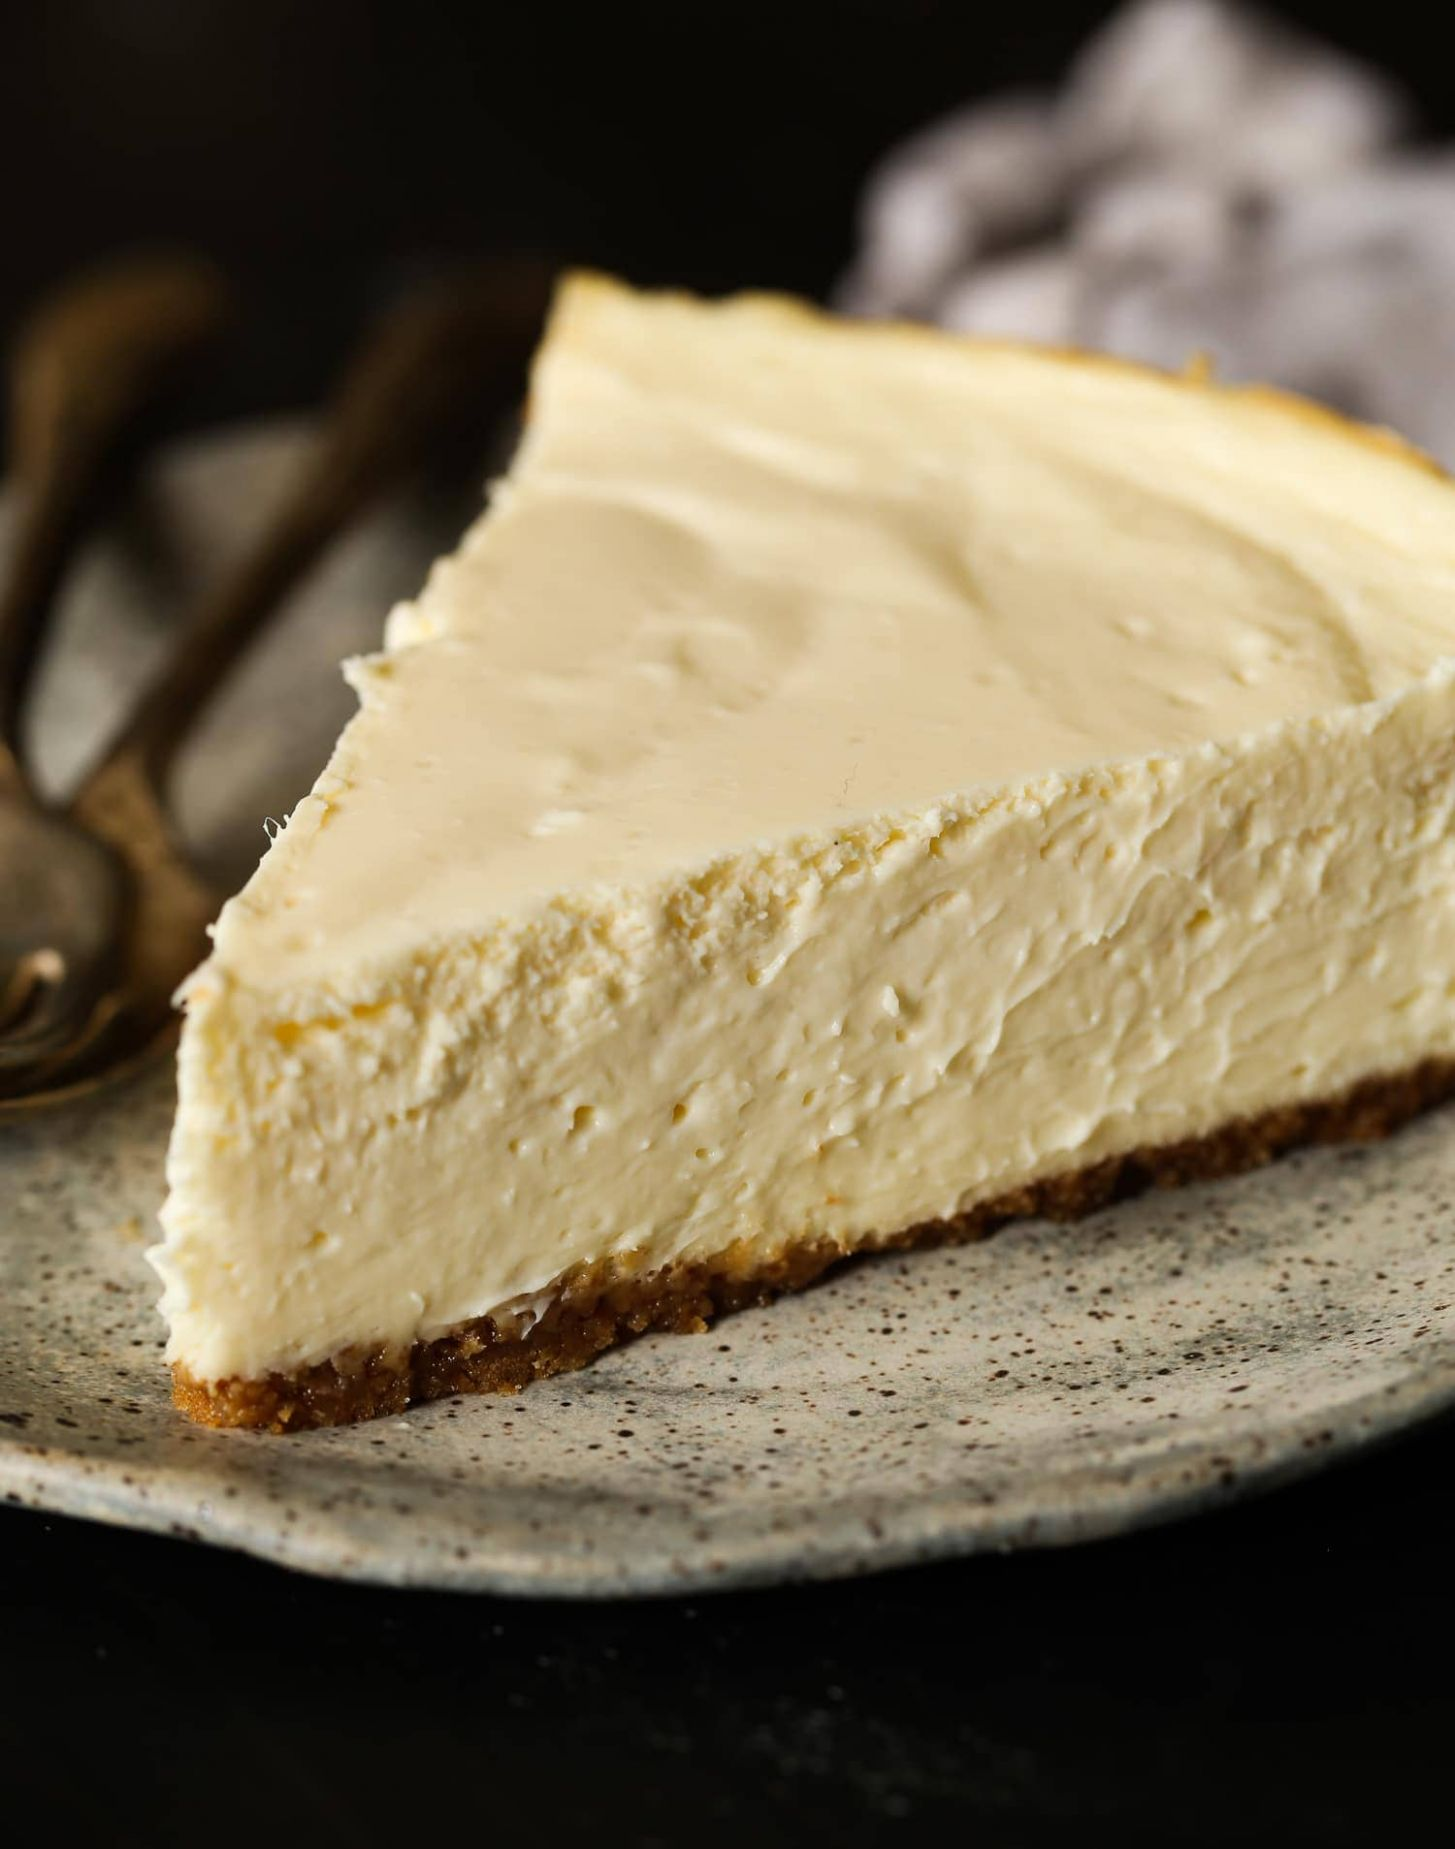 The Best Cheesecake Recipe (Step-by-Step) | Cookies & Cups